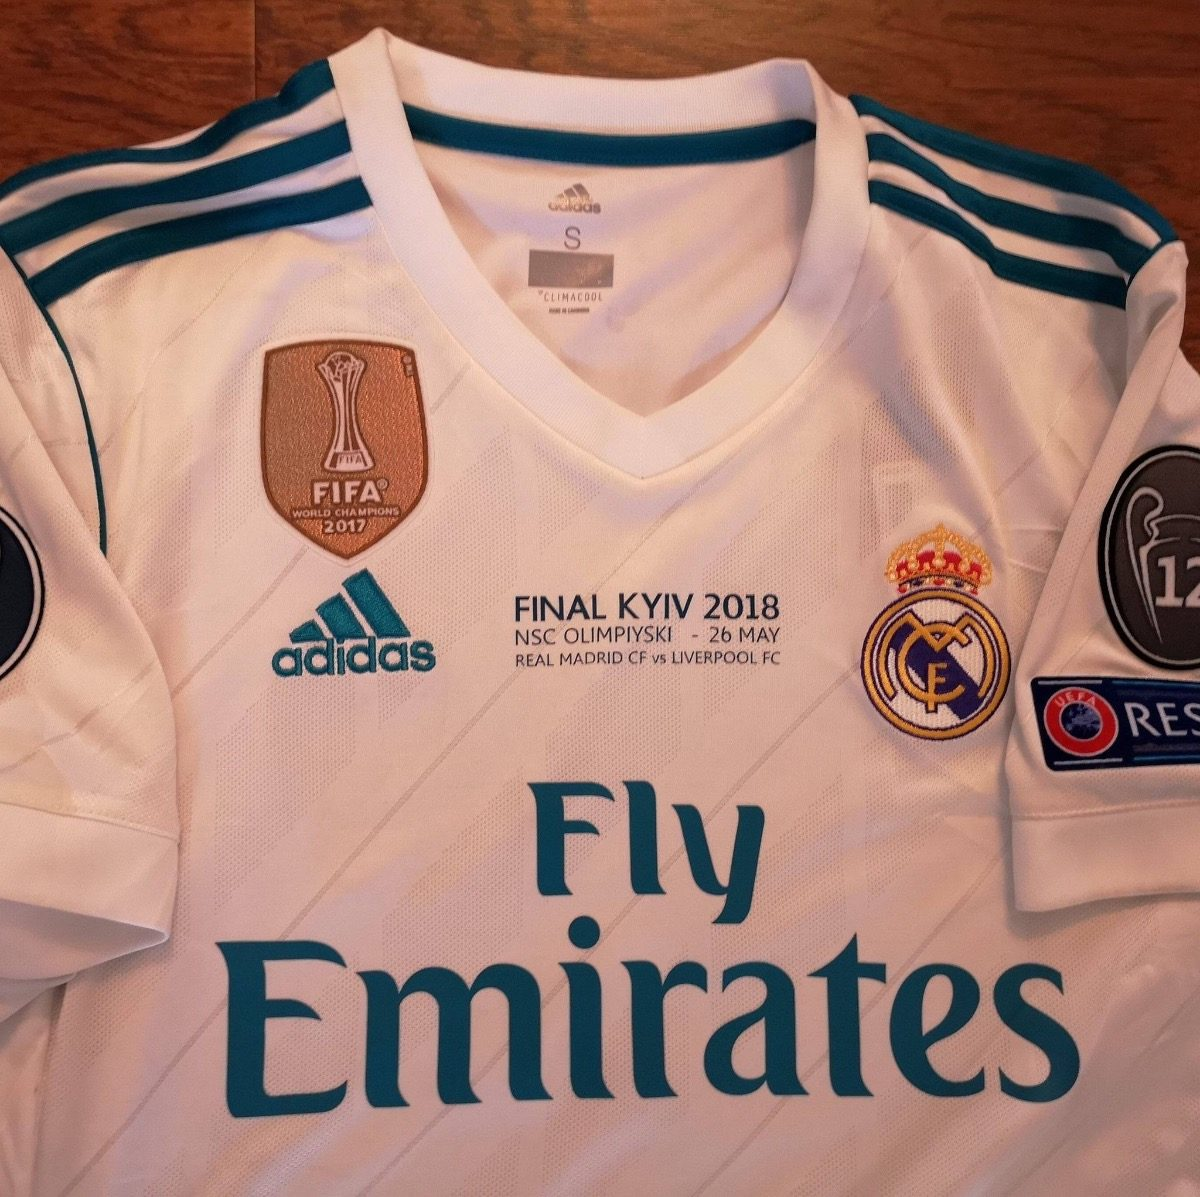 innovative design d0f19 f3ca4 Jersey adidas Real Madrid Champions Final Kiev 2018 Original